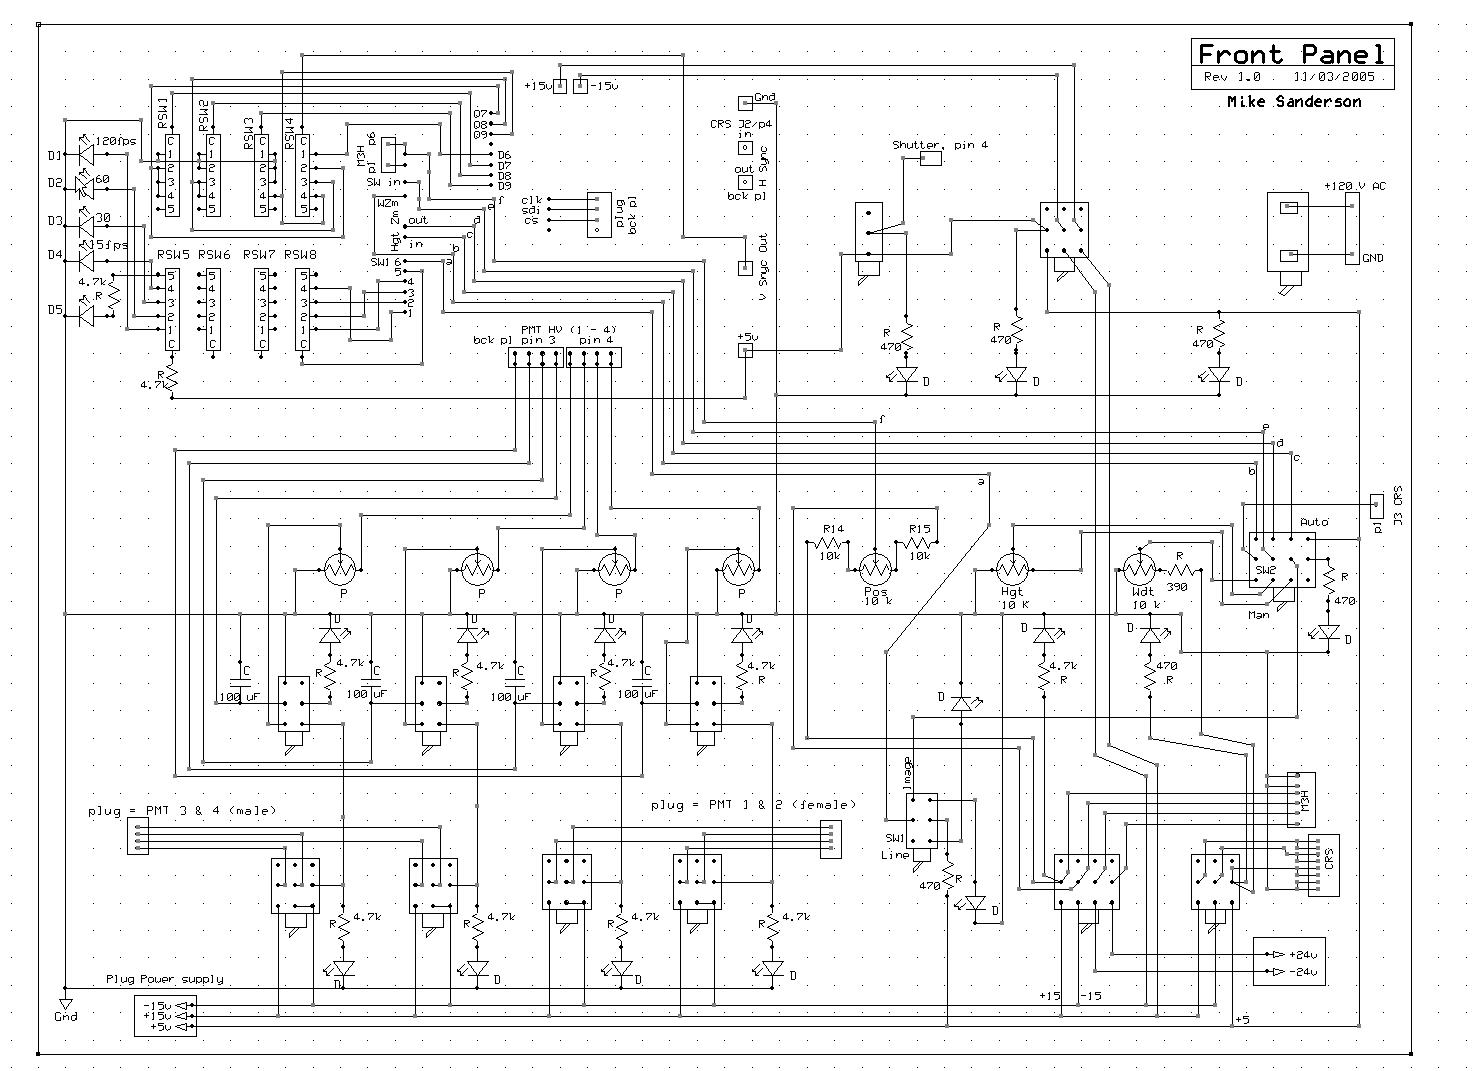 front panel schematic olympian genset wiring diagram dolgular com onan emerald 1 genset wiring diagram at soozxer.org